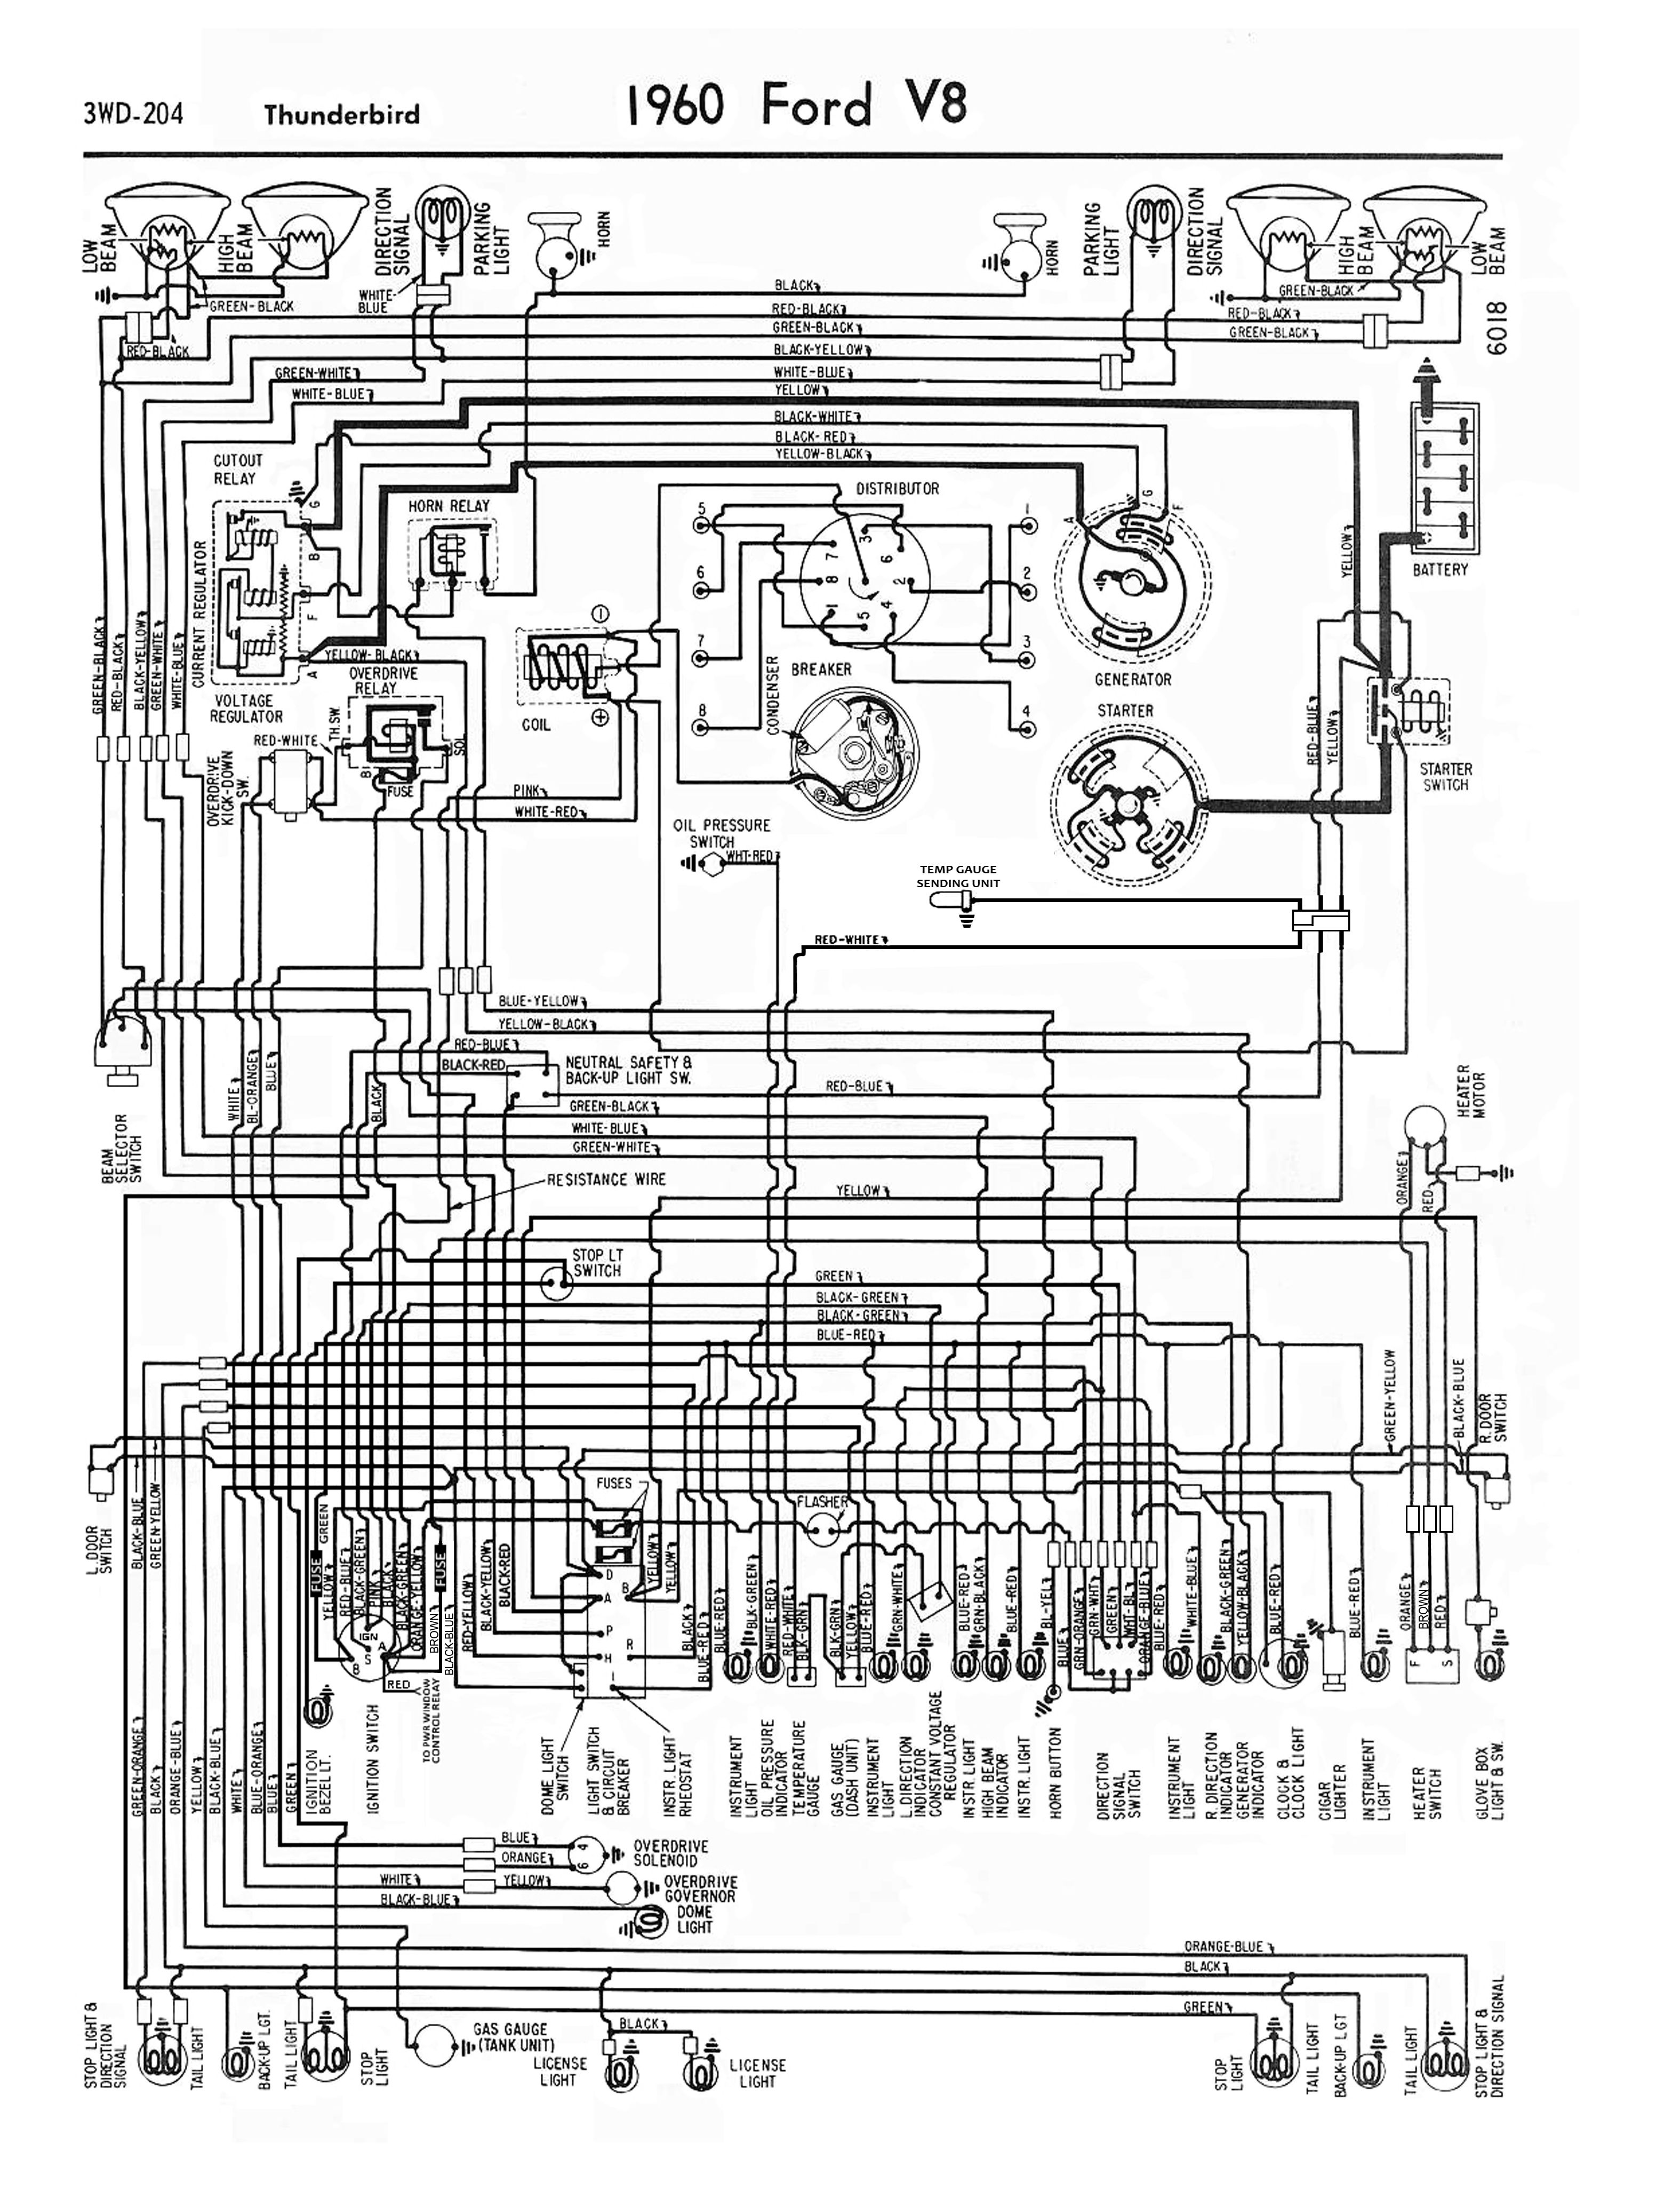 hight resolution of 60 t bird wiring diagram squarebird pinterest ford ford 1960 ford f100 truck wiring diagram 1960 ford wiring diagram